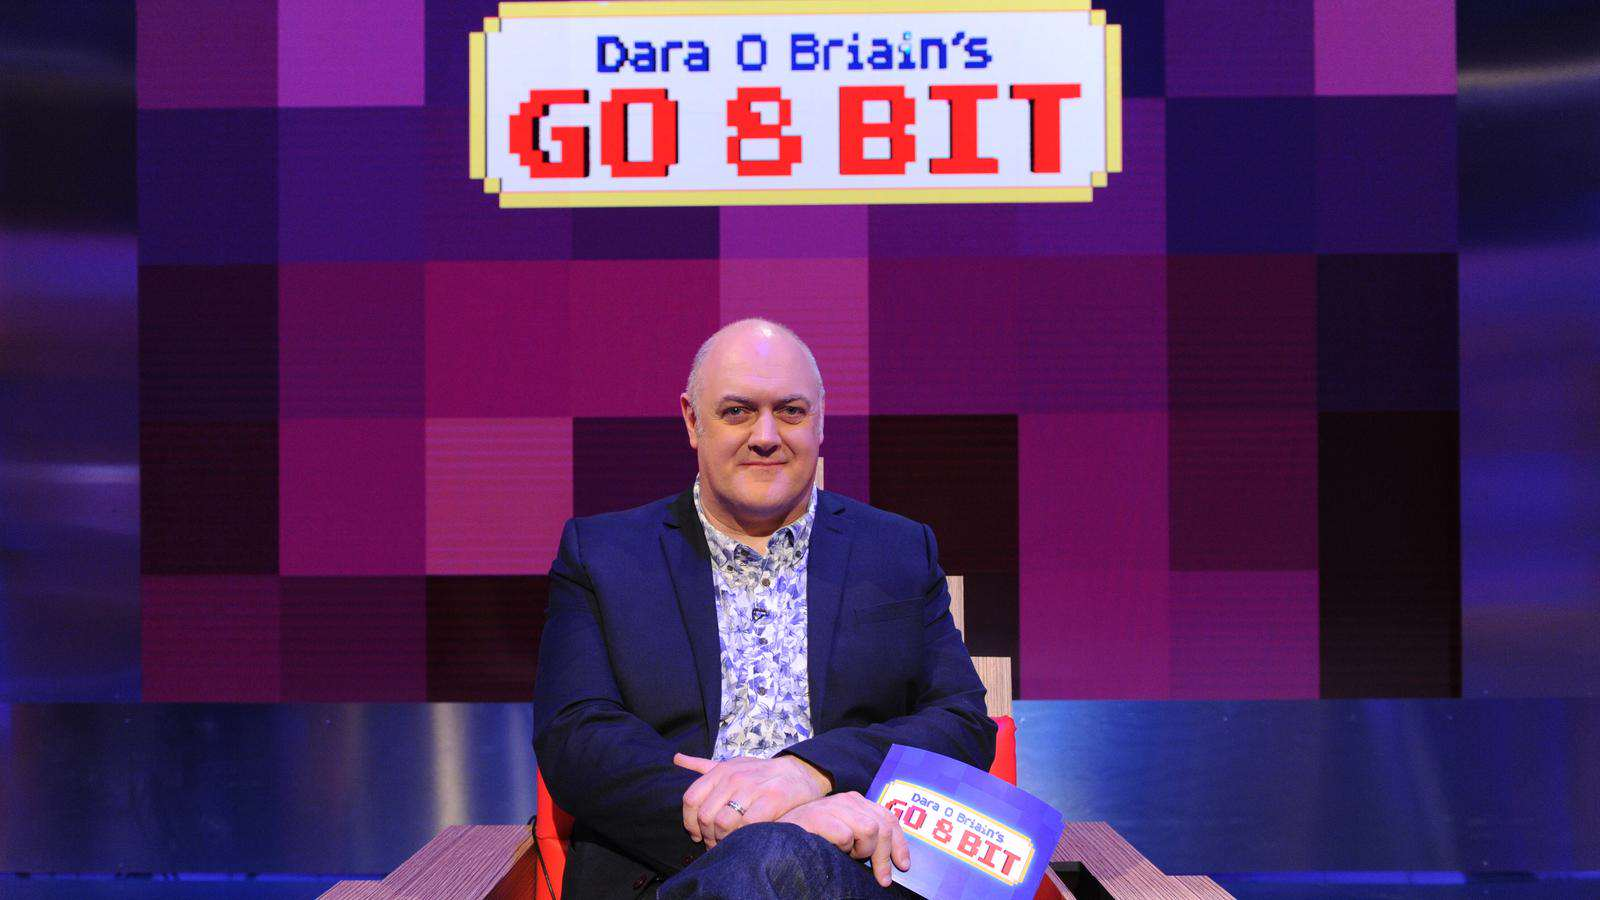 Dara O Briains Go 8 Bit TV Videogame Show Is Sounding Awesome j6spxpk8vdx8wfgwvdmw